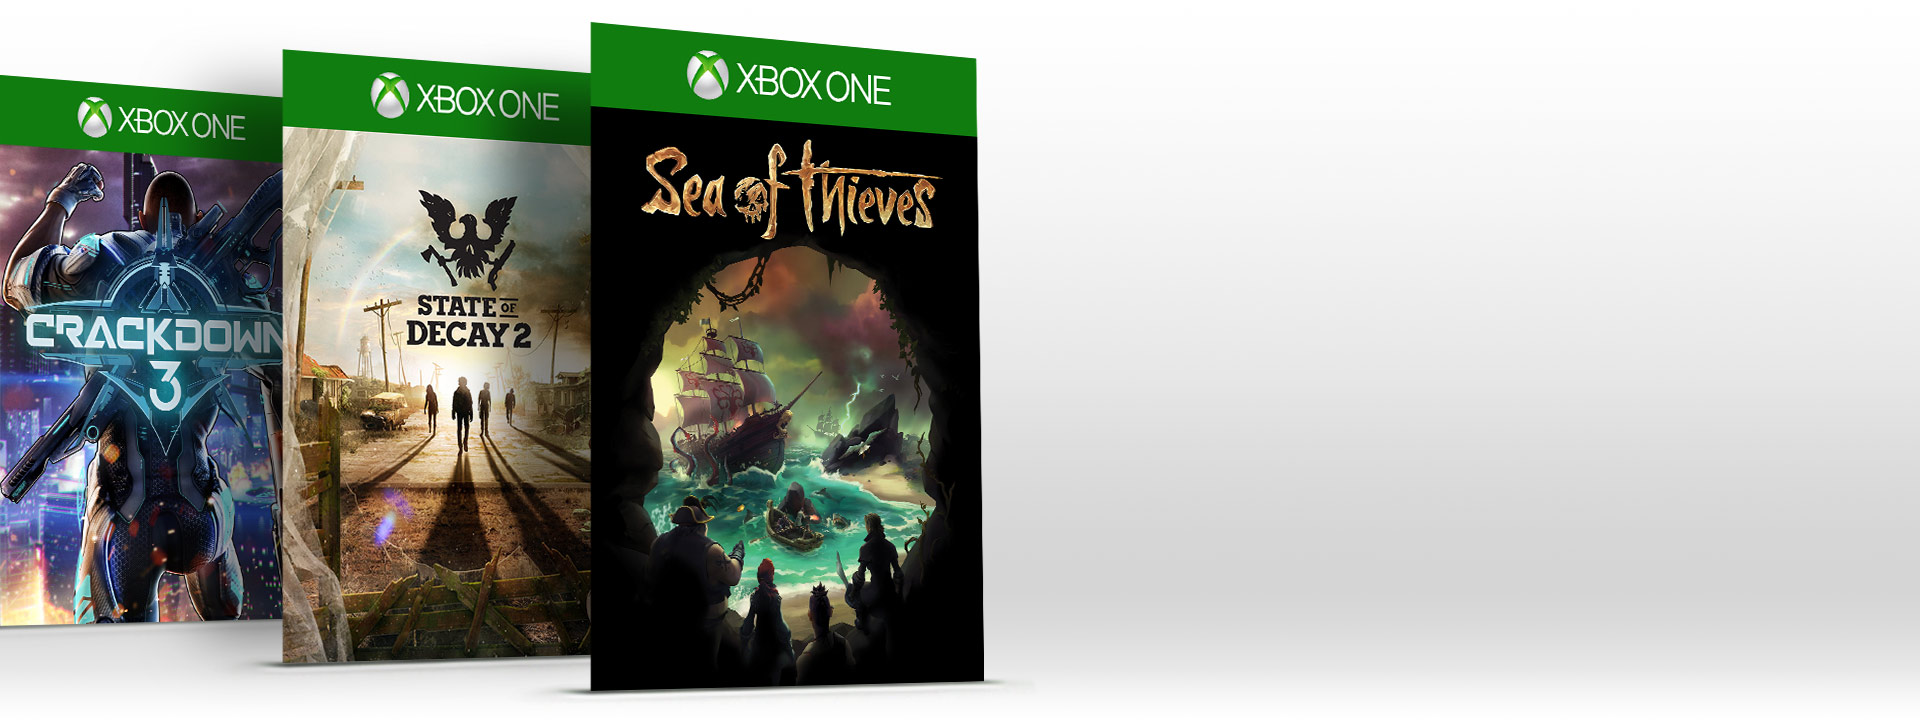 Trois jeux Xbox en ligne : Sea of Thieves, State of Decay 2 et Crackdown 3